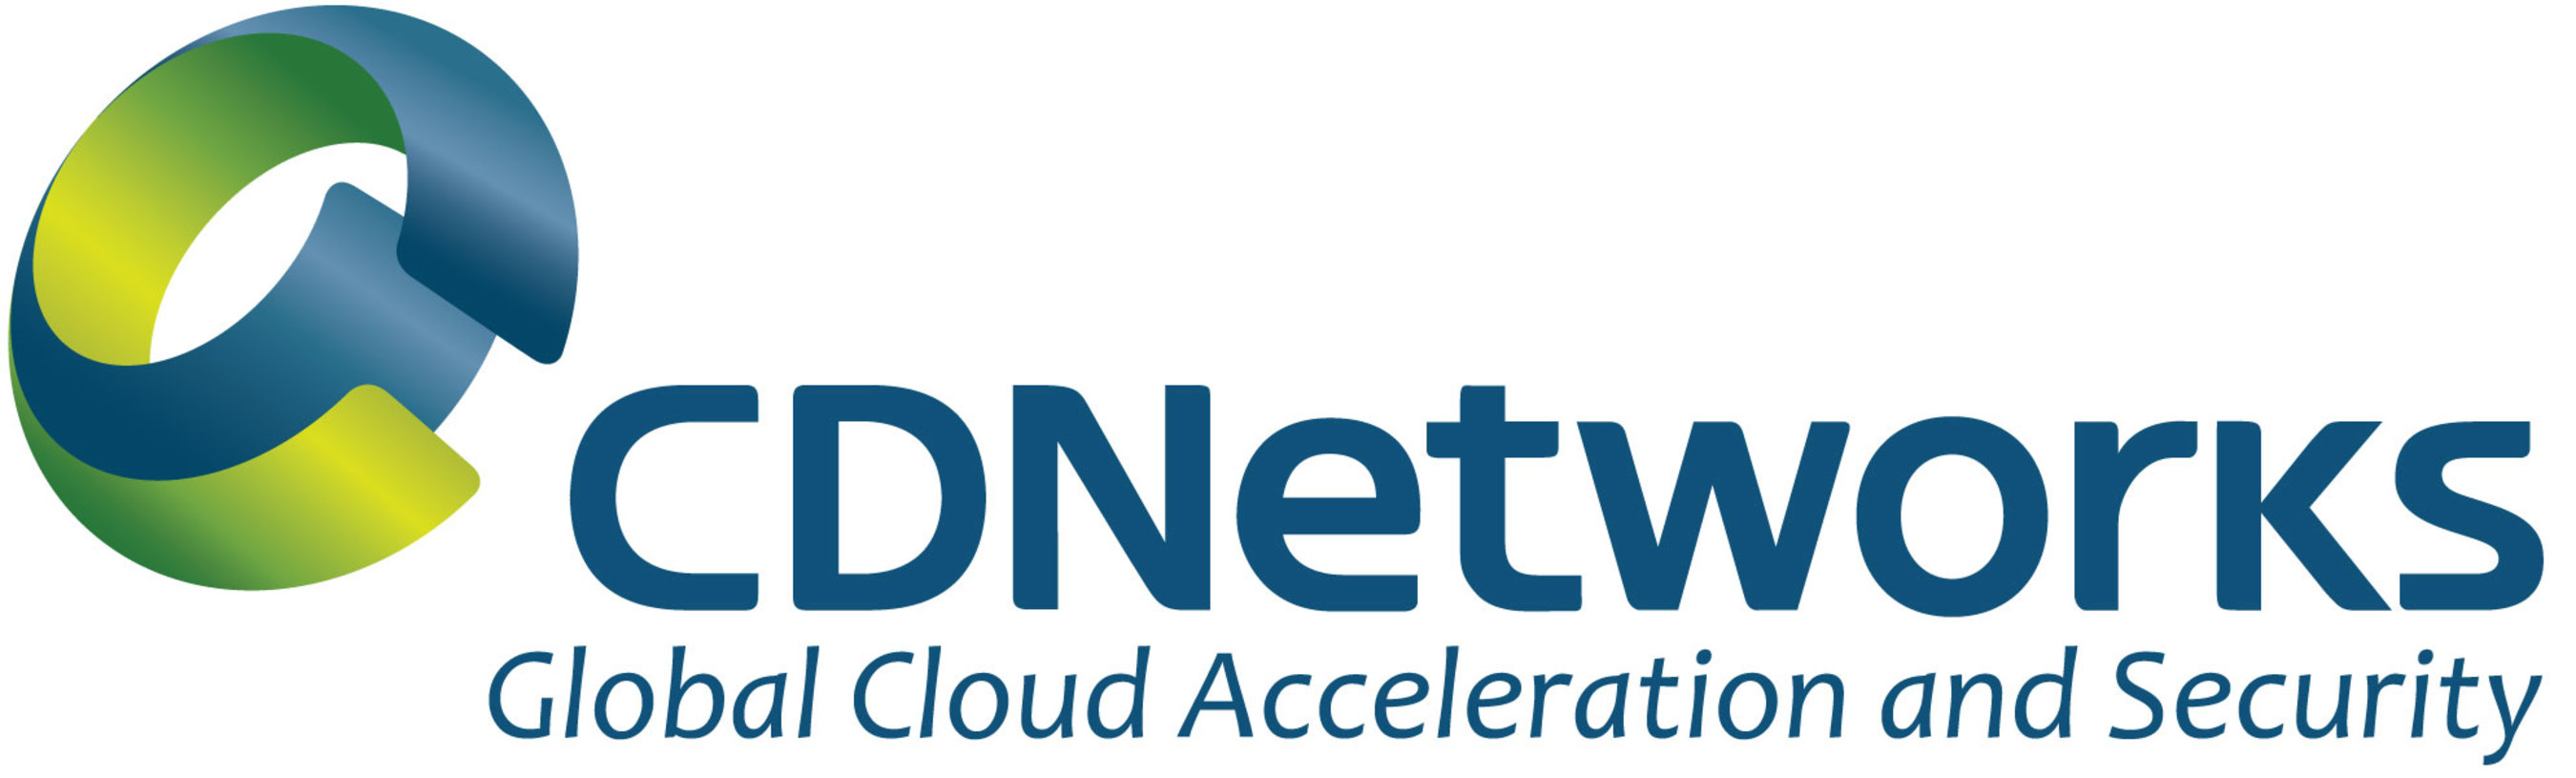 Contact CDNetworks at info@cdnetworks.com or www.cdnetworks.com.